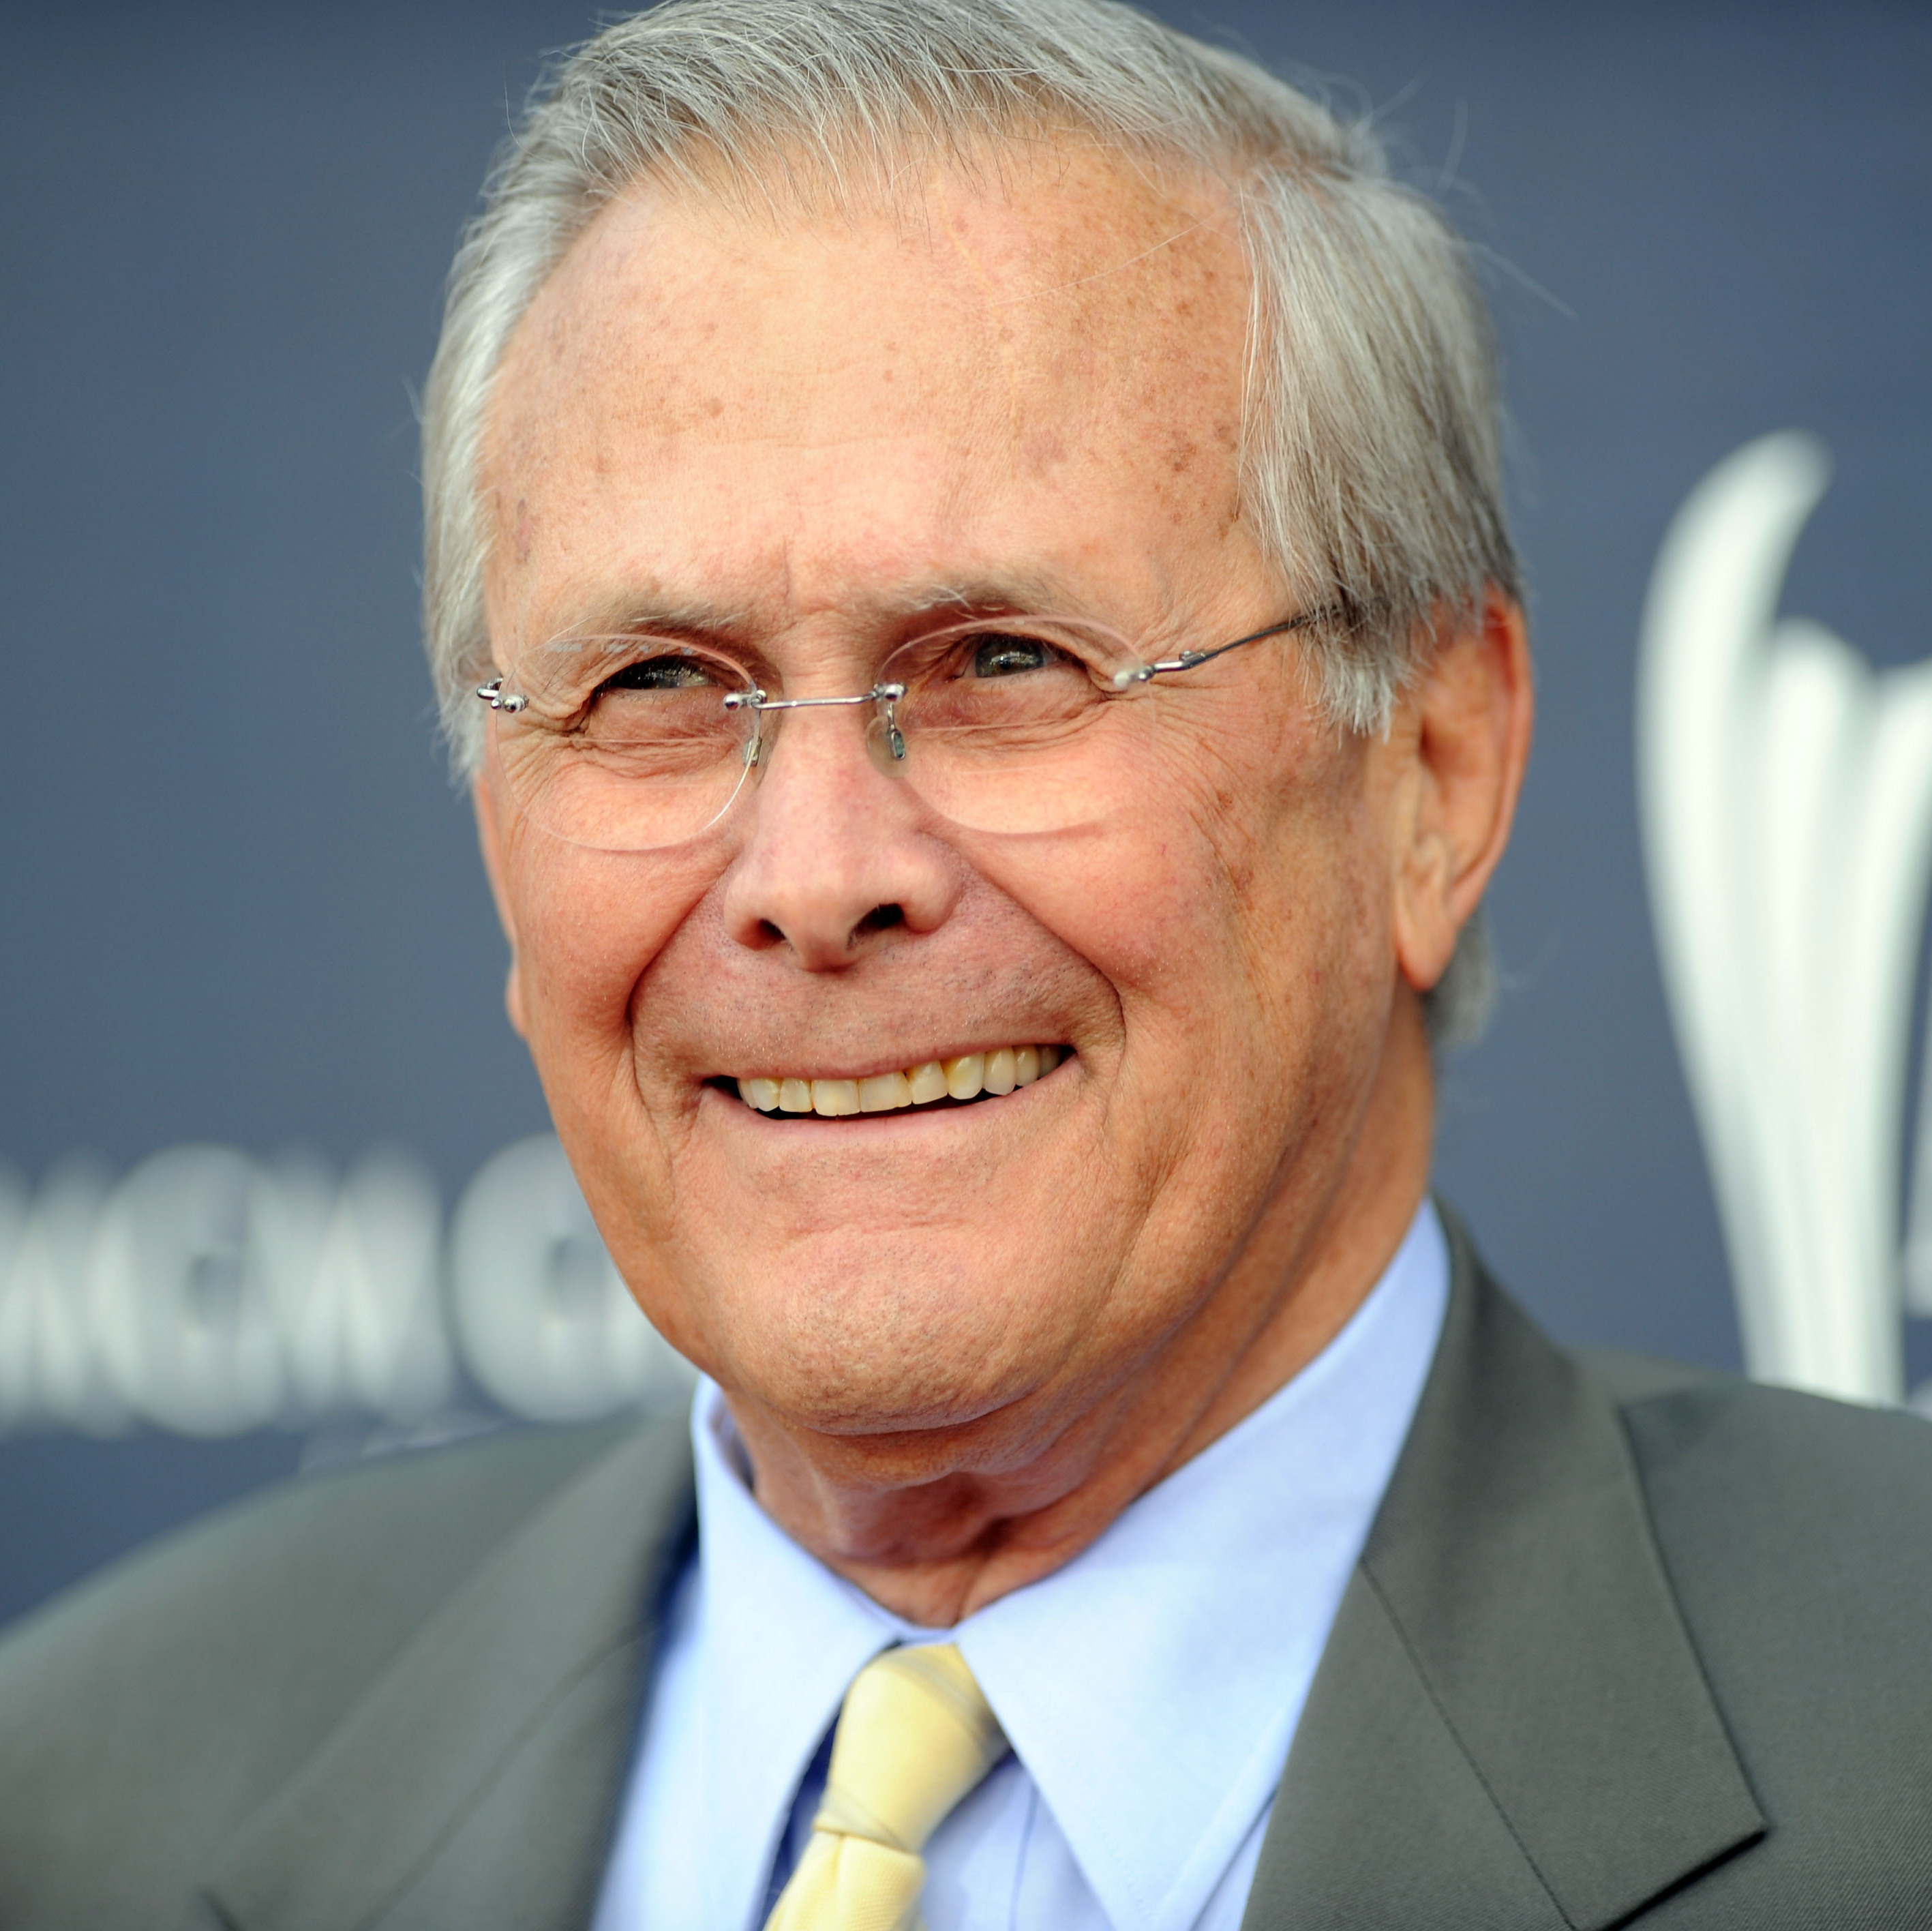 Former Secretary of Defense Donald Rumsfeld is the subject of Unknown Known, a new documentary by Errol Morris.